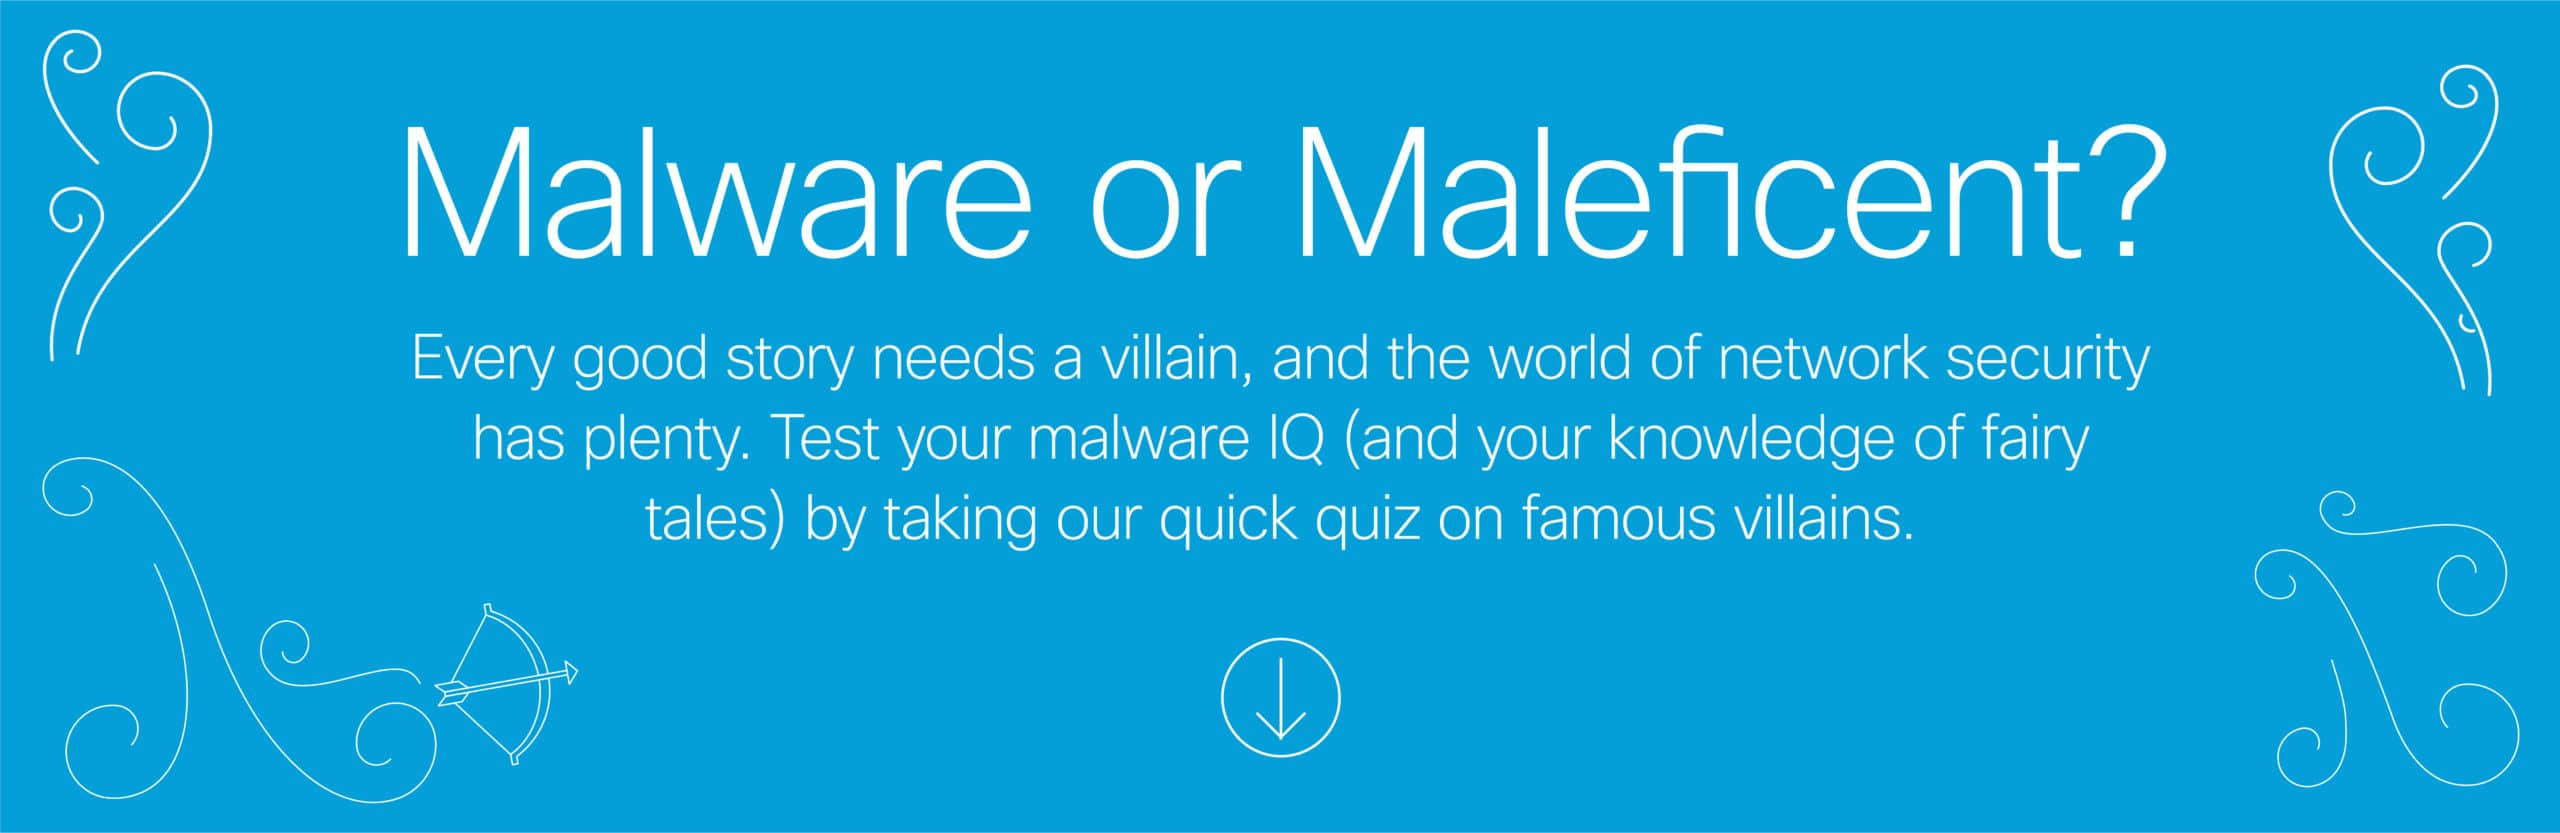 Malware or Maleficent? Malware IQ Quiz